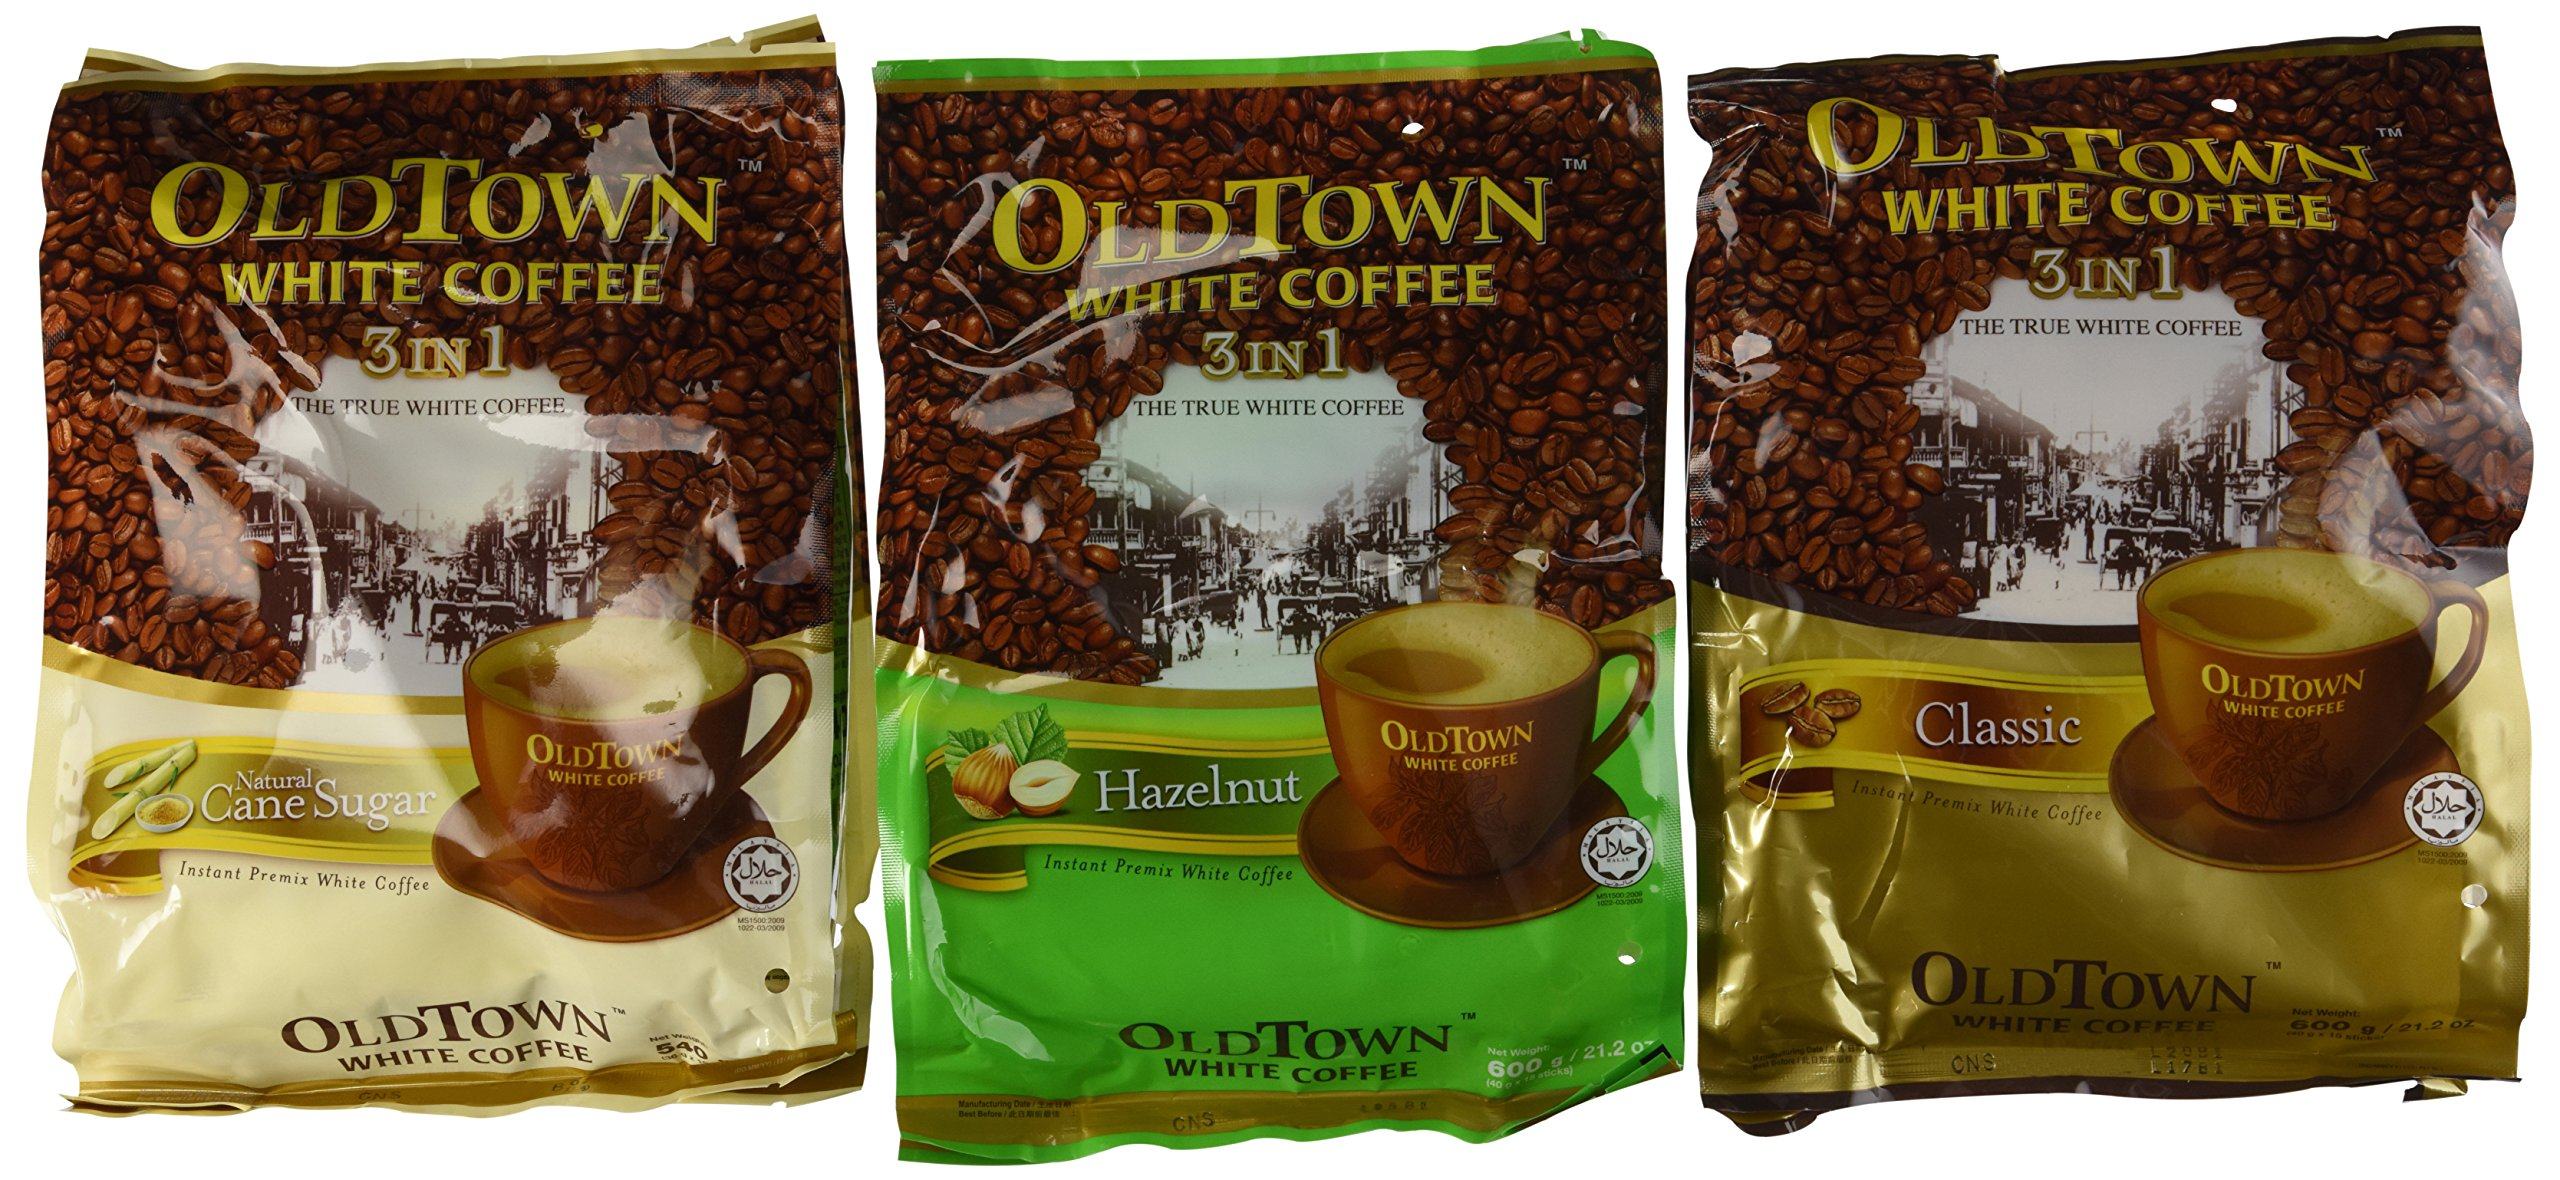 OLD TOWN White Coffee 3 in 1 Variety Pack (Classic, Natural Cane Sugar, Hazelnut)